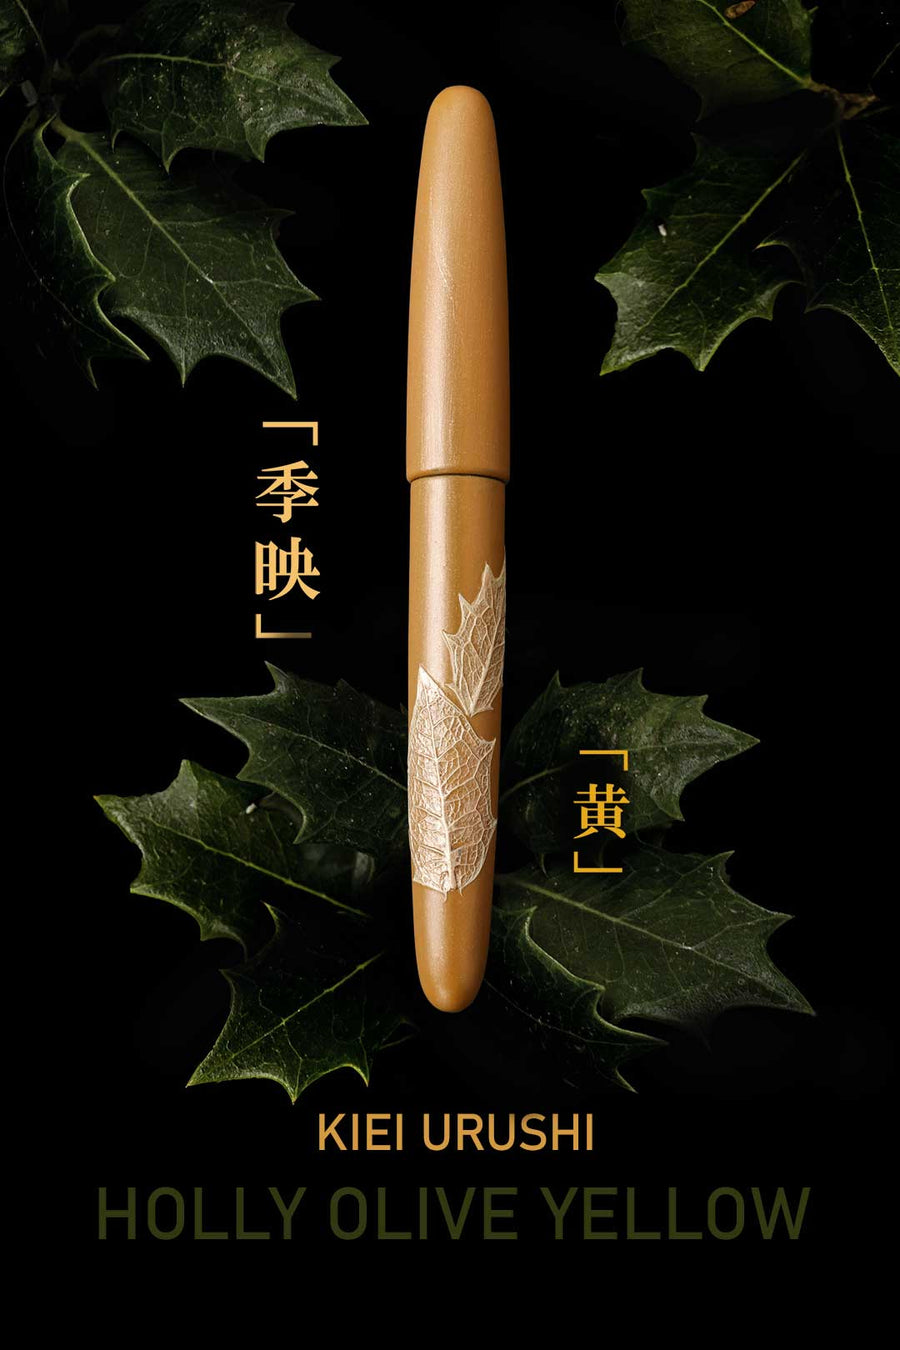 季映 Kiei Urushi - Holly Olive Yellow - Wancherpen International